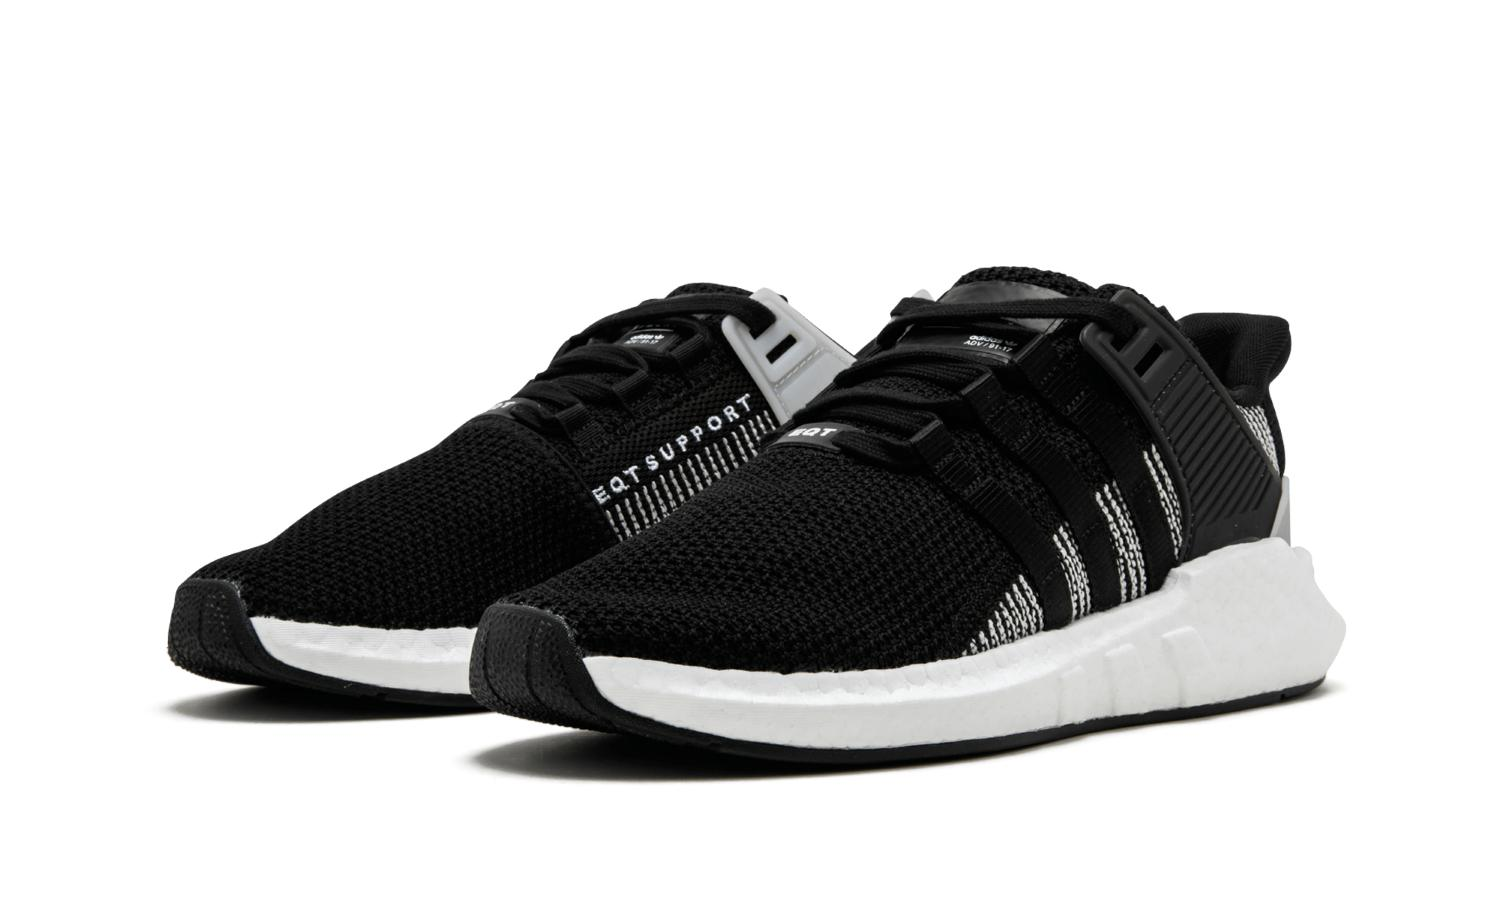 discount adidas eqt support 93 17 core black white by9509